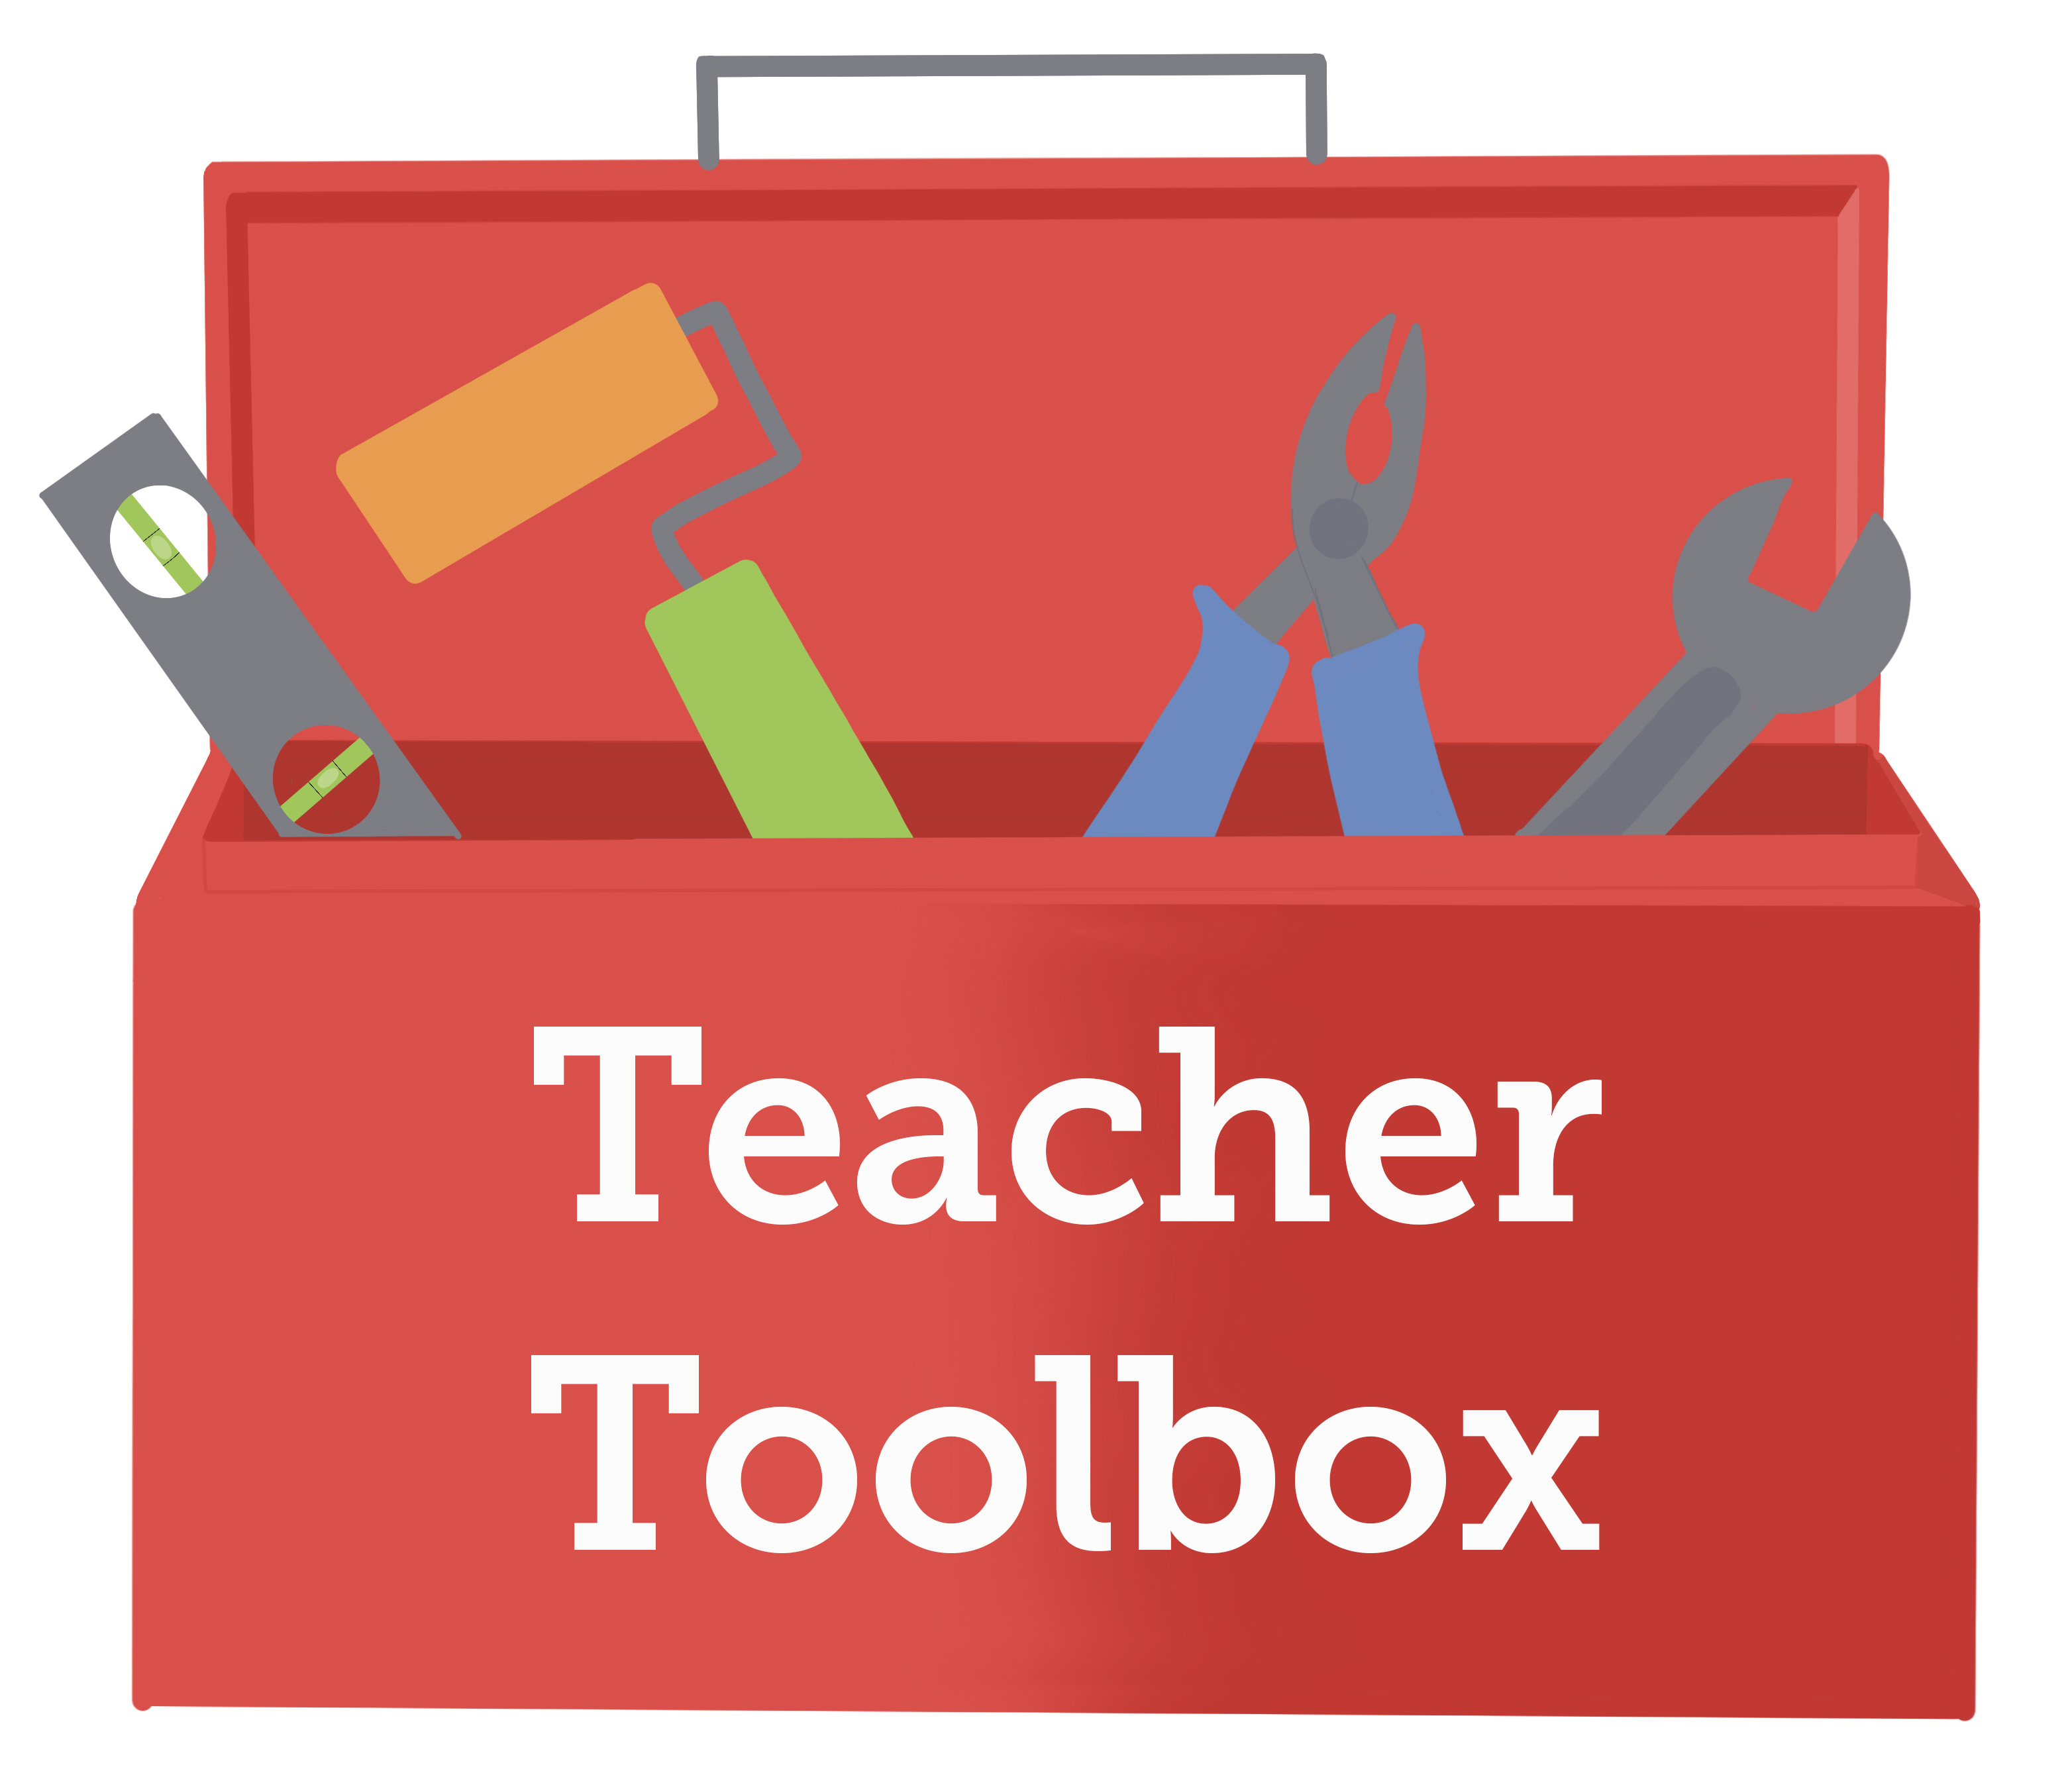 Red toolbox containing a level, paint roller, pliers, and a wrench